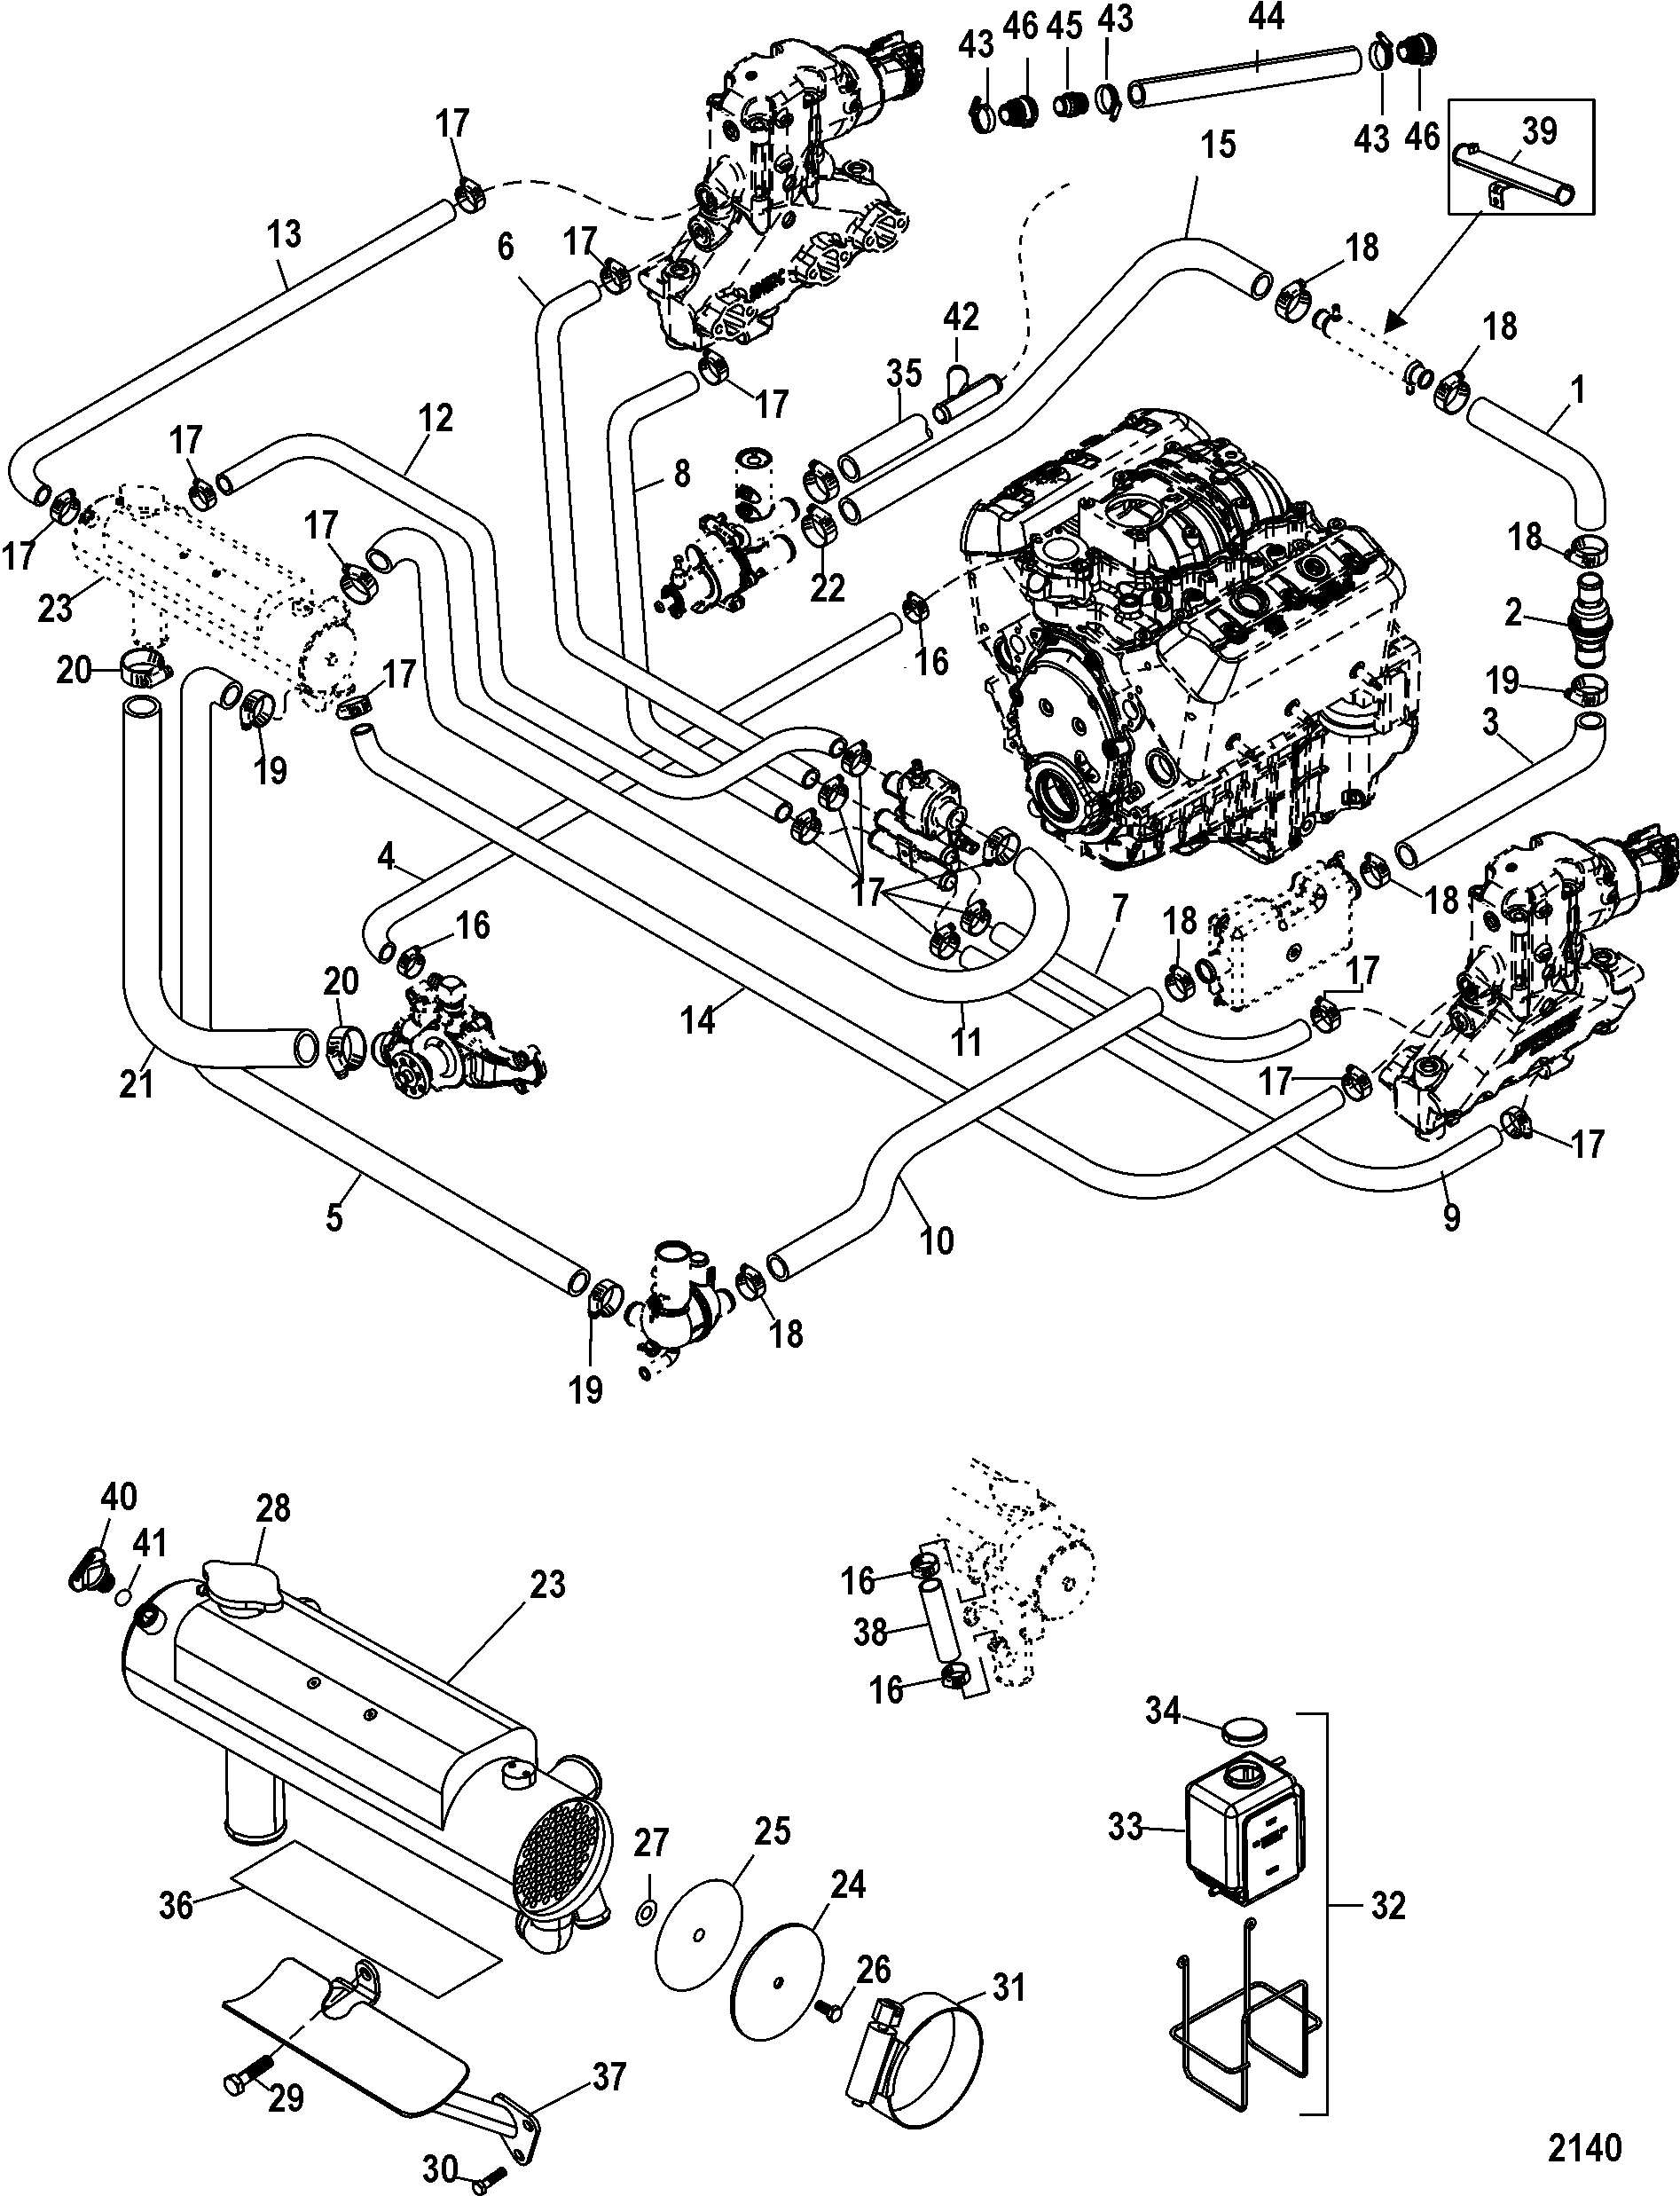 Duramax Lb7 Engine Parts Diagram further RepairGuideContent as well Chevysmallblockbasic 01 together with V8 Engine Clip Art moreover 3800 Series 2 Engine Performance Parts. on 350 chevy engine supercharged